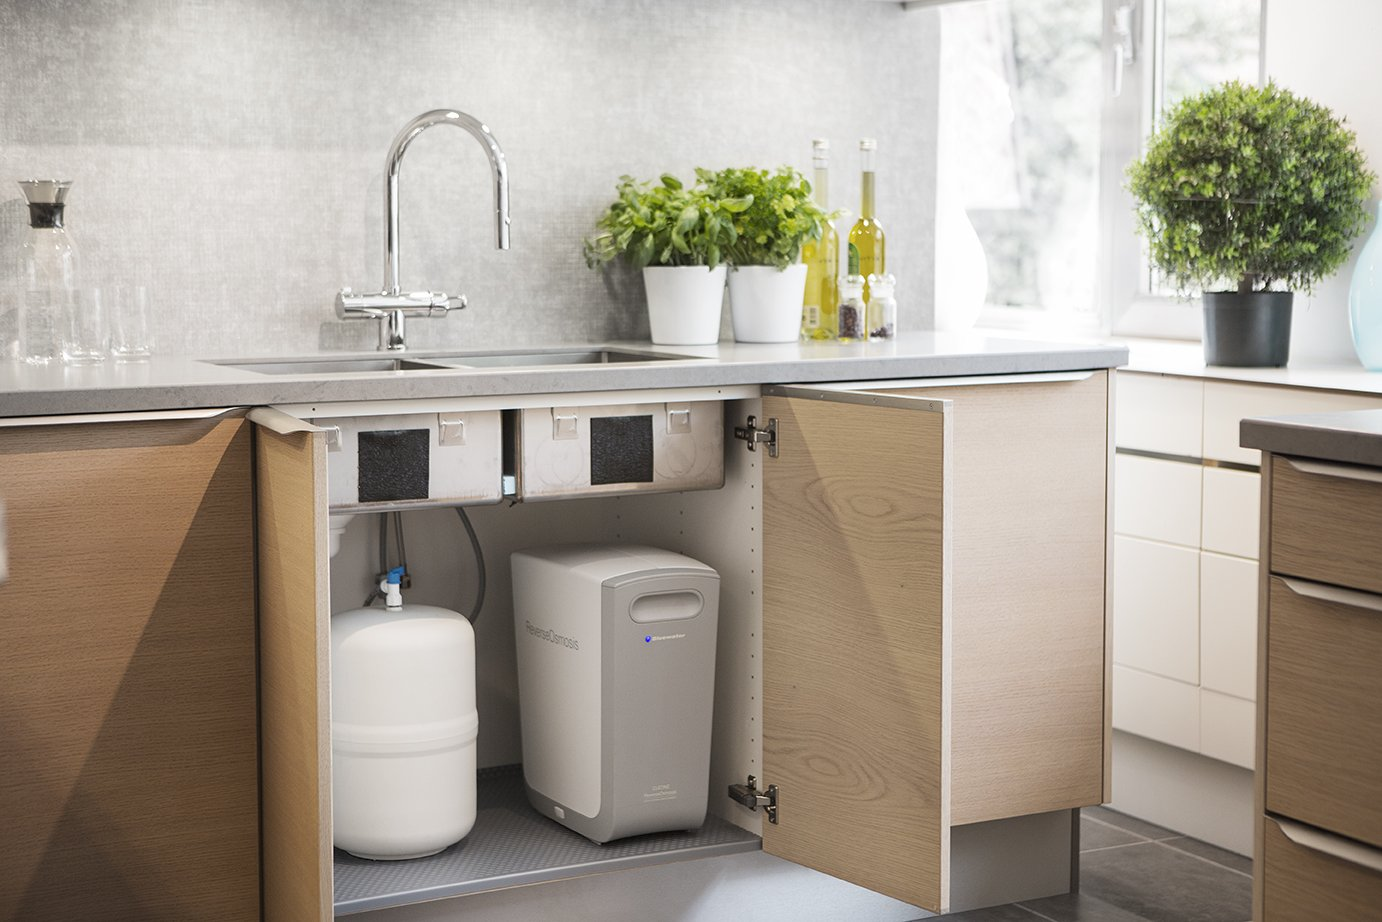 Bluewater Classic Cleone Water Filtration System, Grey by Bluewater (Image #4)